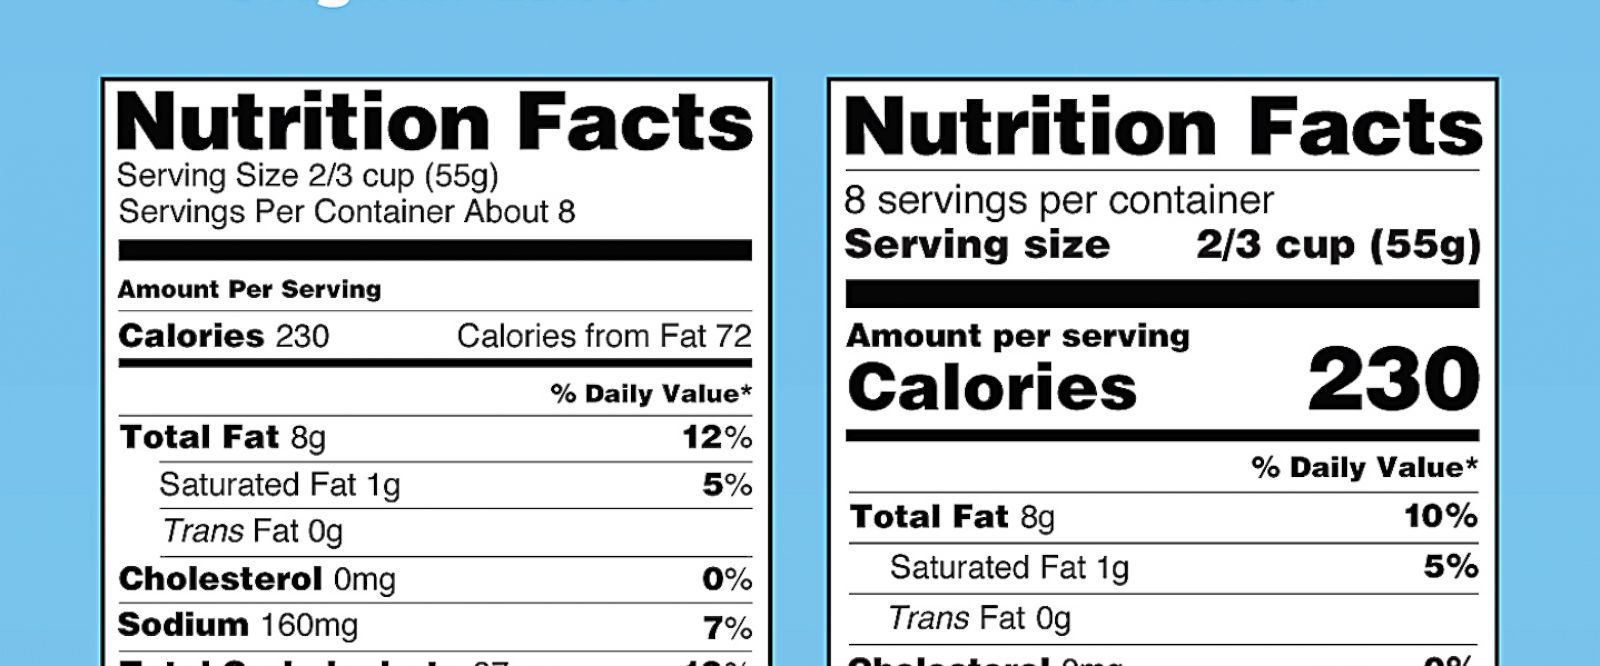 NutritionLabels.jpg